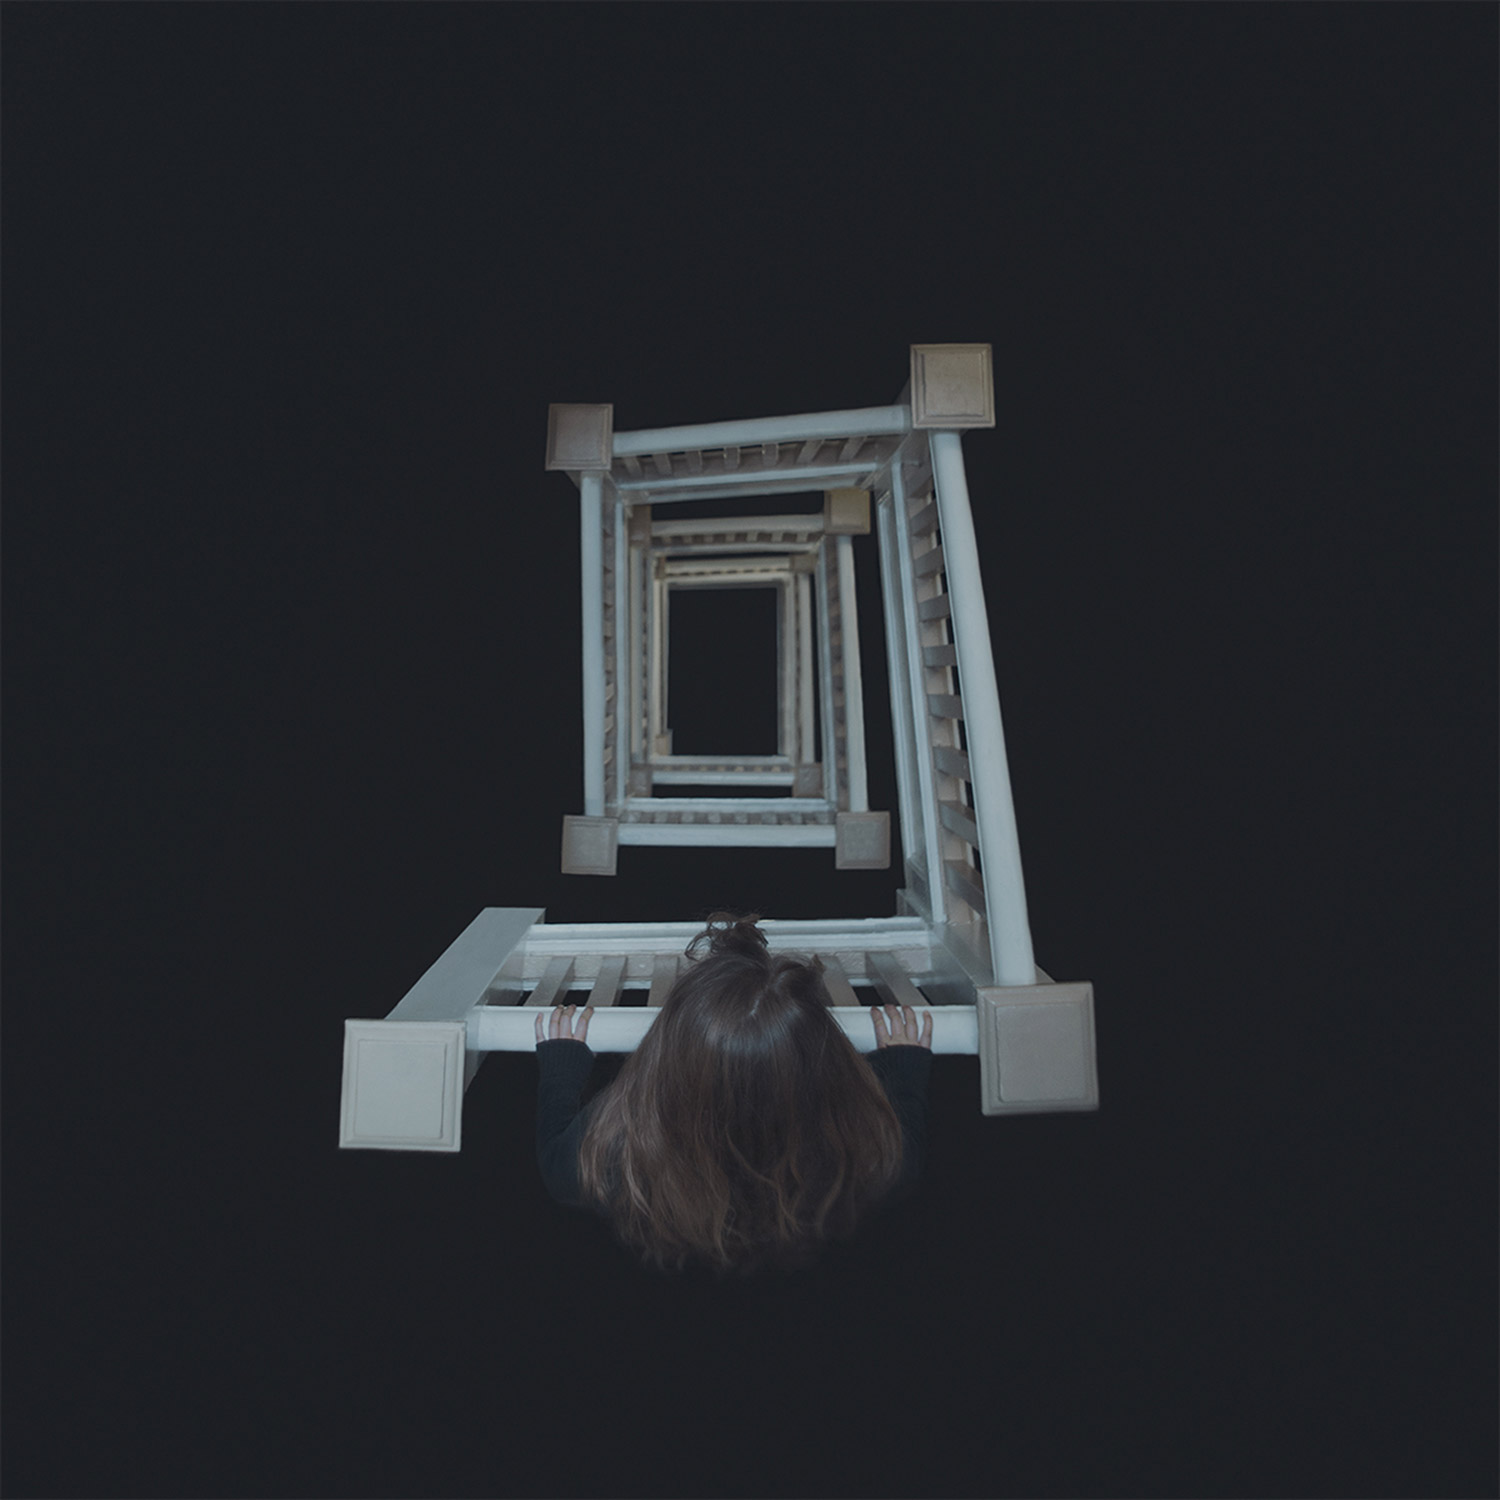 Gabriel Isak, In a Dream, spiralling staircase and darkness